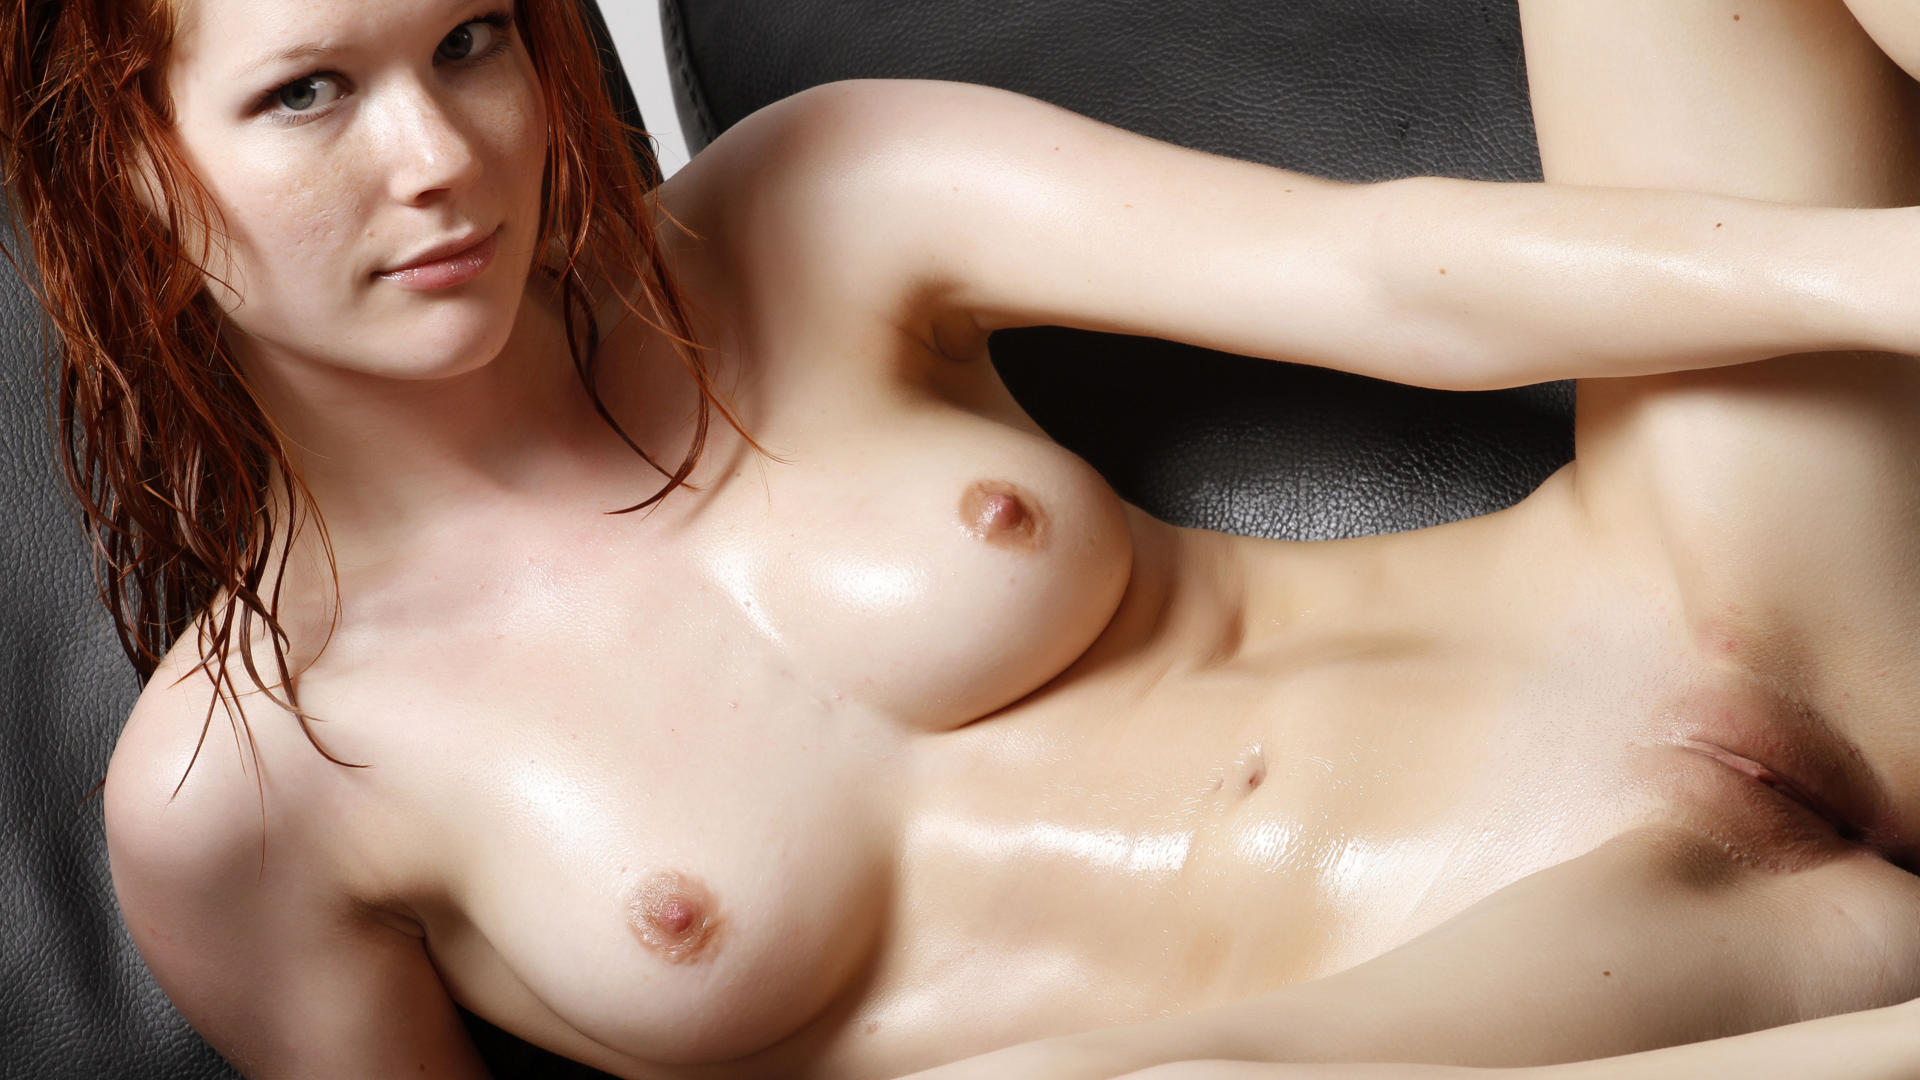 Pity, Lynette beautiful redhead nude